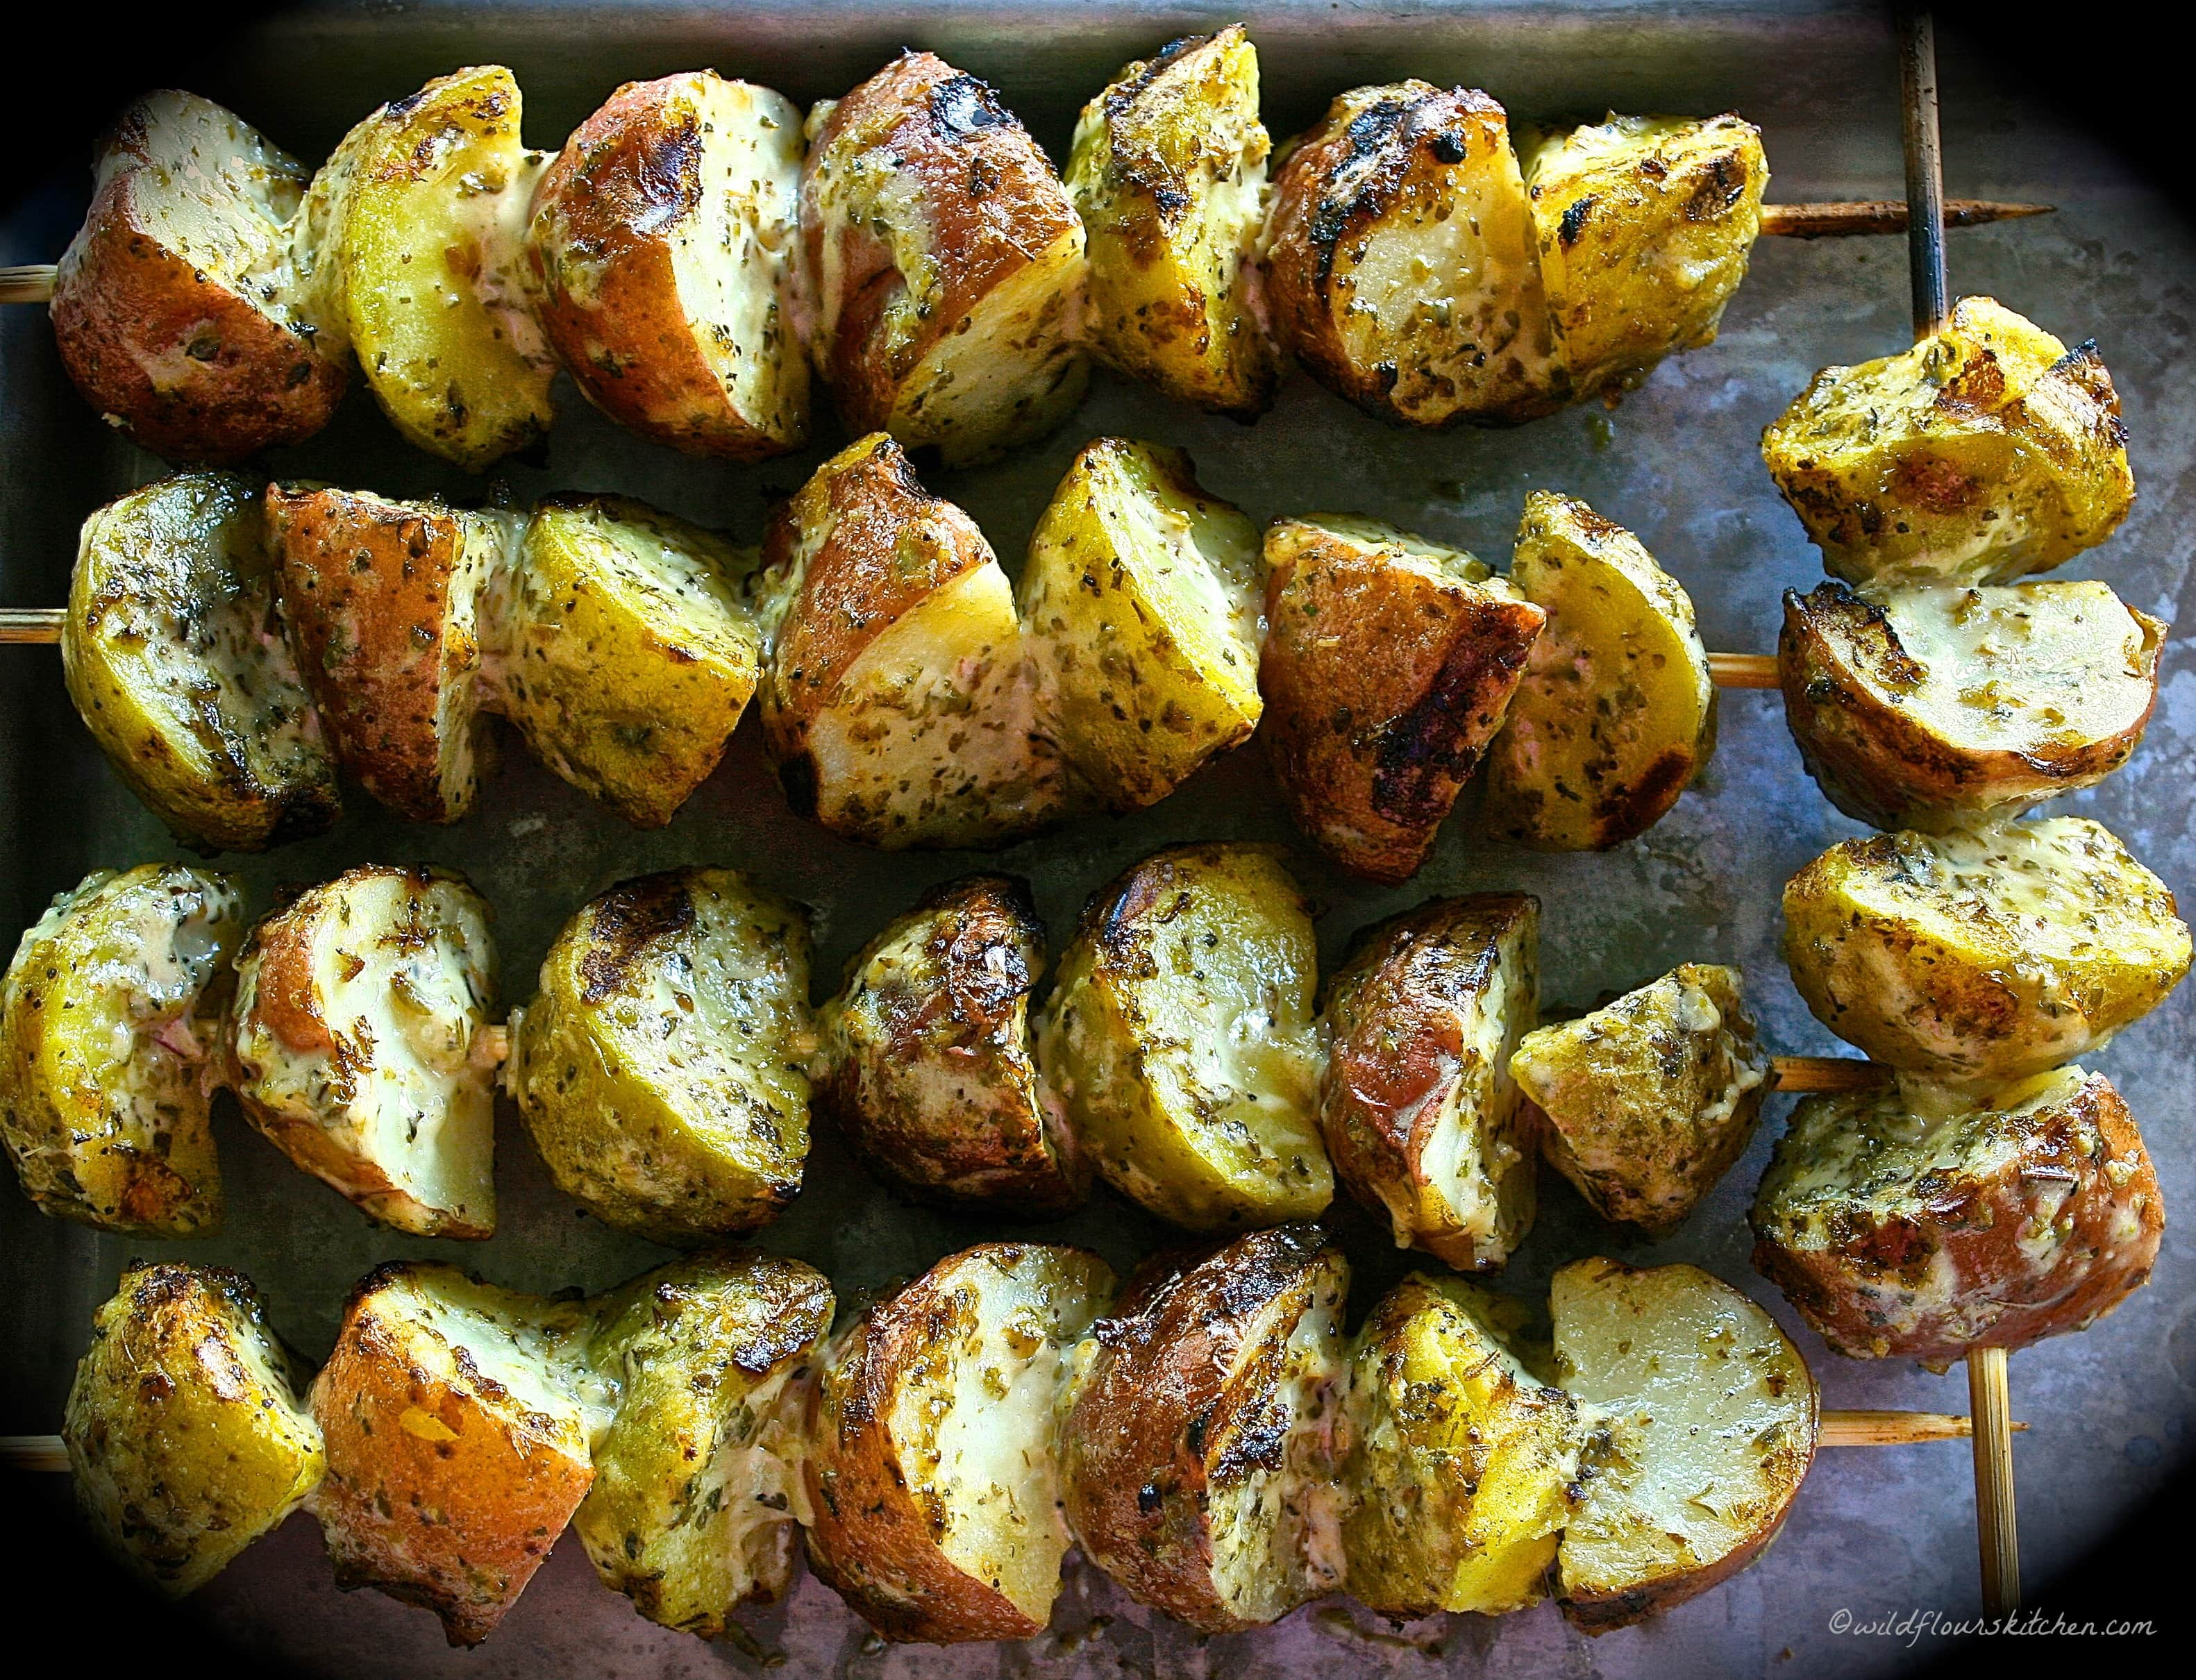 Grilled Baby Potatoes with Italian Herbs